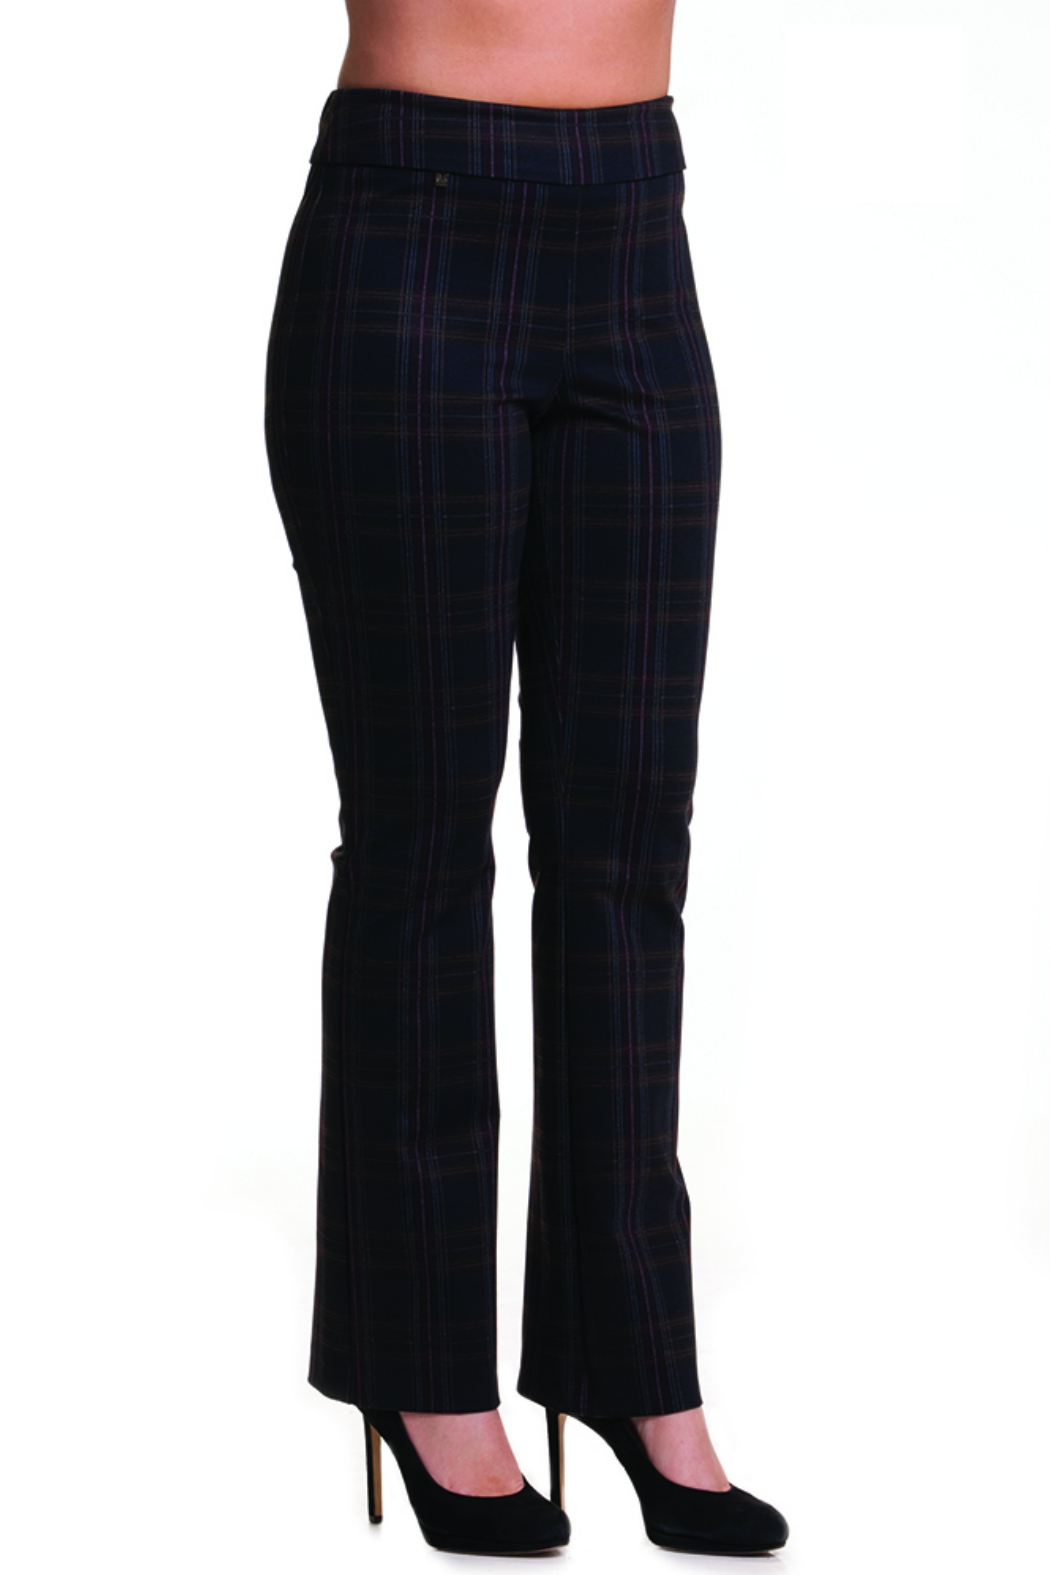 481d1a28567ec Bali Corp. Black Wine Plaid Pant from New Jersey by Charlotte s Web ...